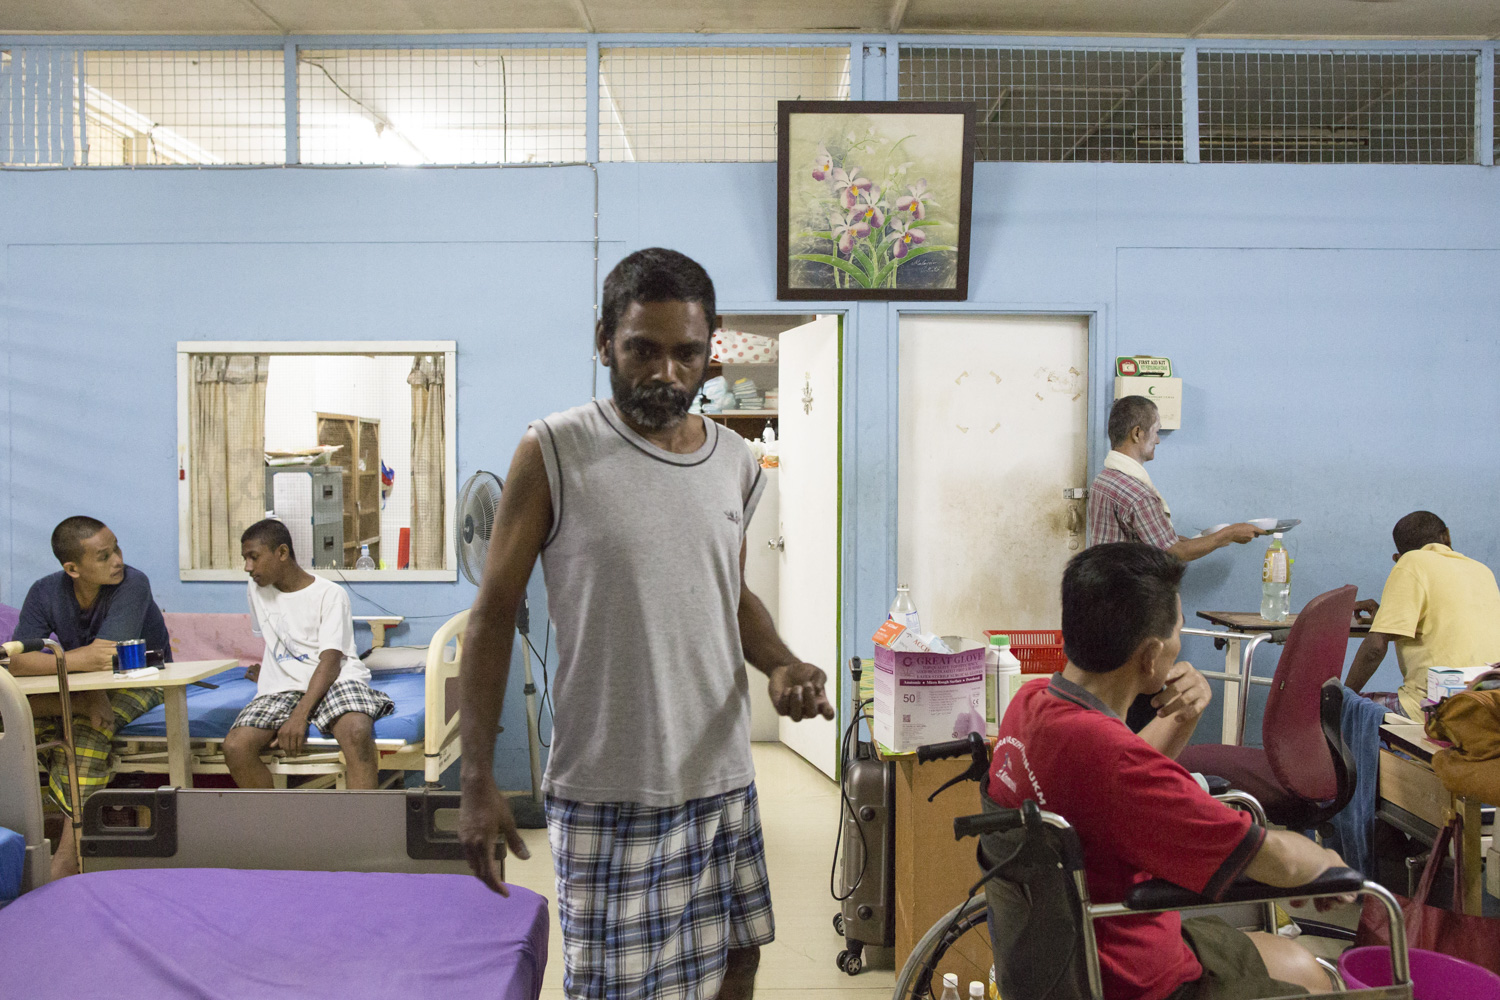 A typical scene in the evening at the sick bay. Kumaran used to work in a law firm before being diagnosed with HIV. He moved to PLC's sick bay where he receives nursing care after developing a stroke.